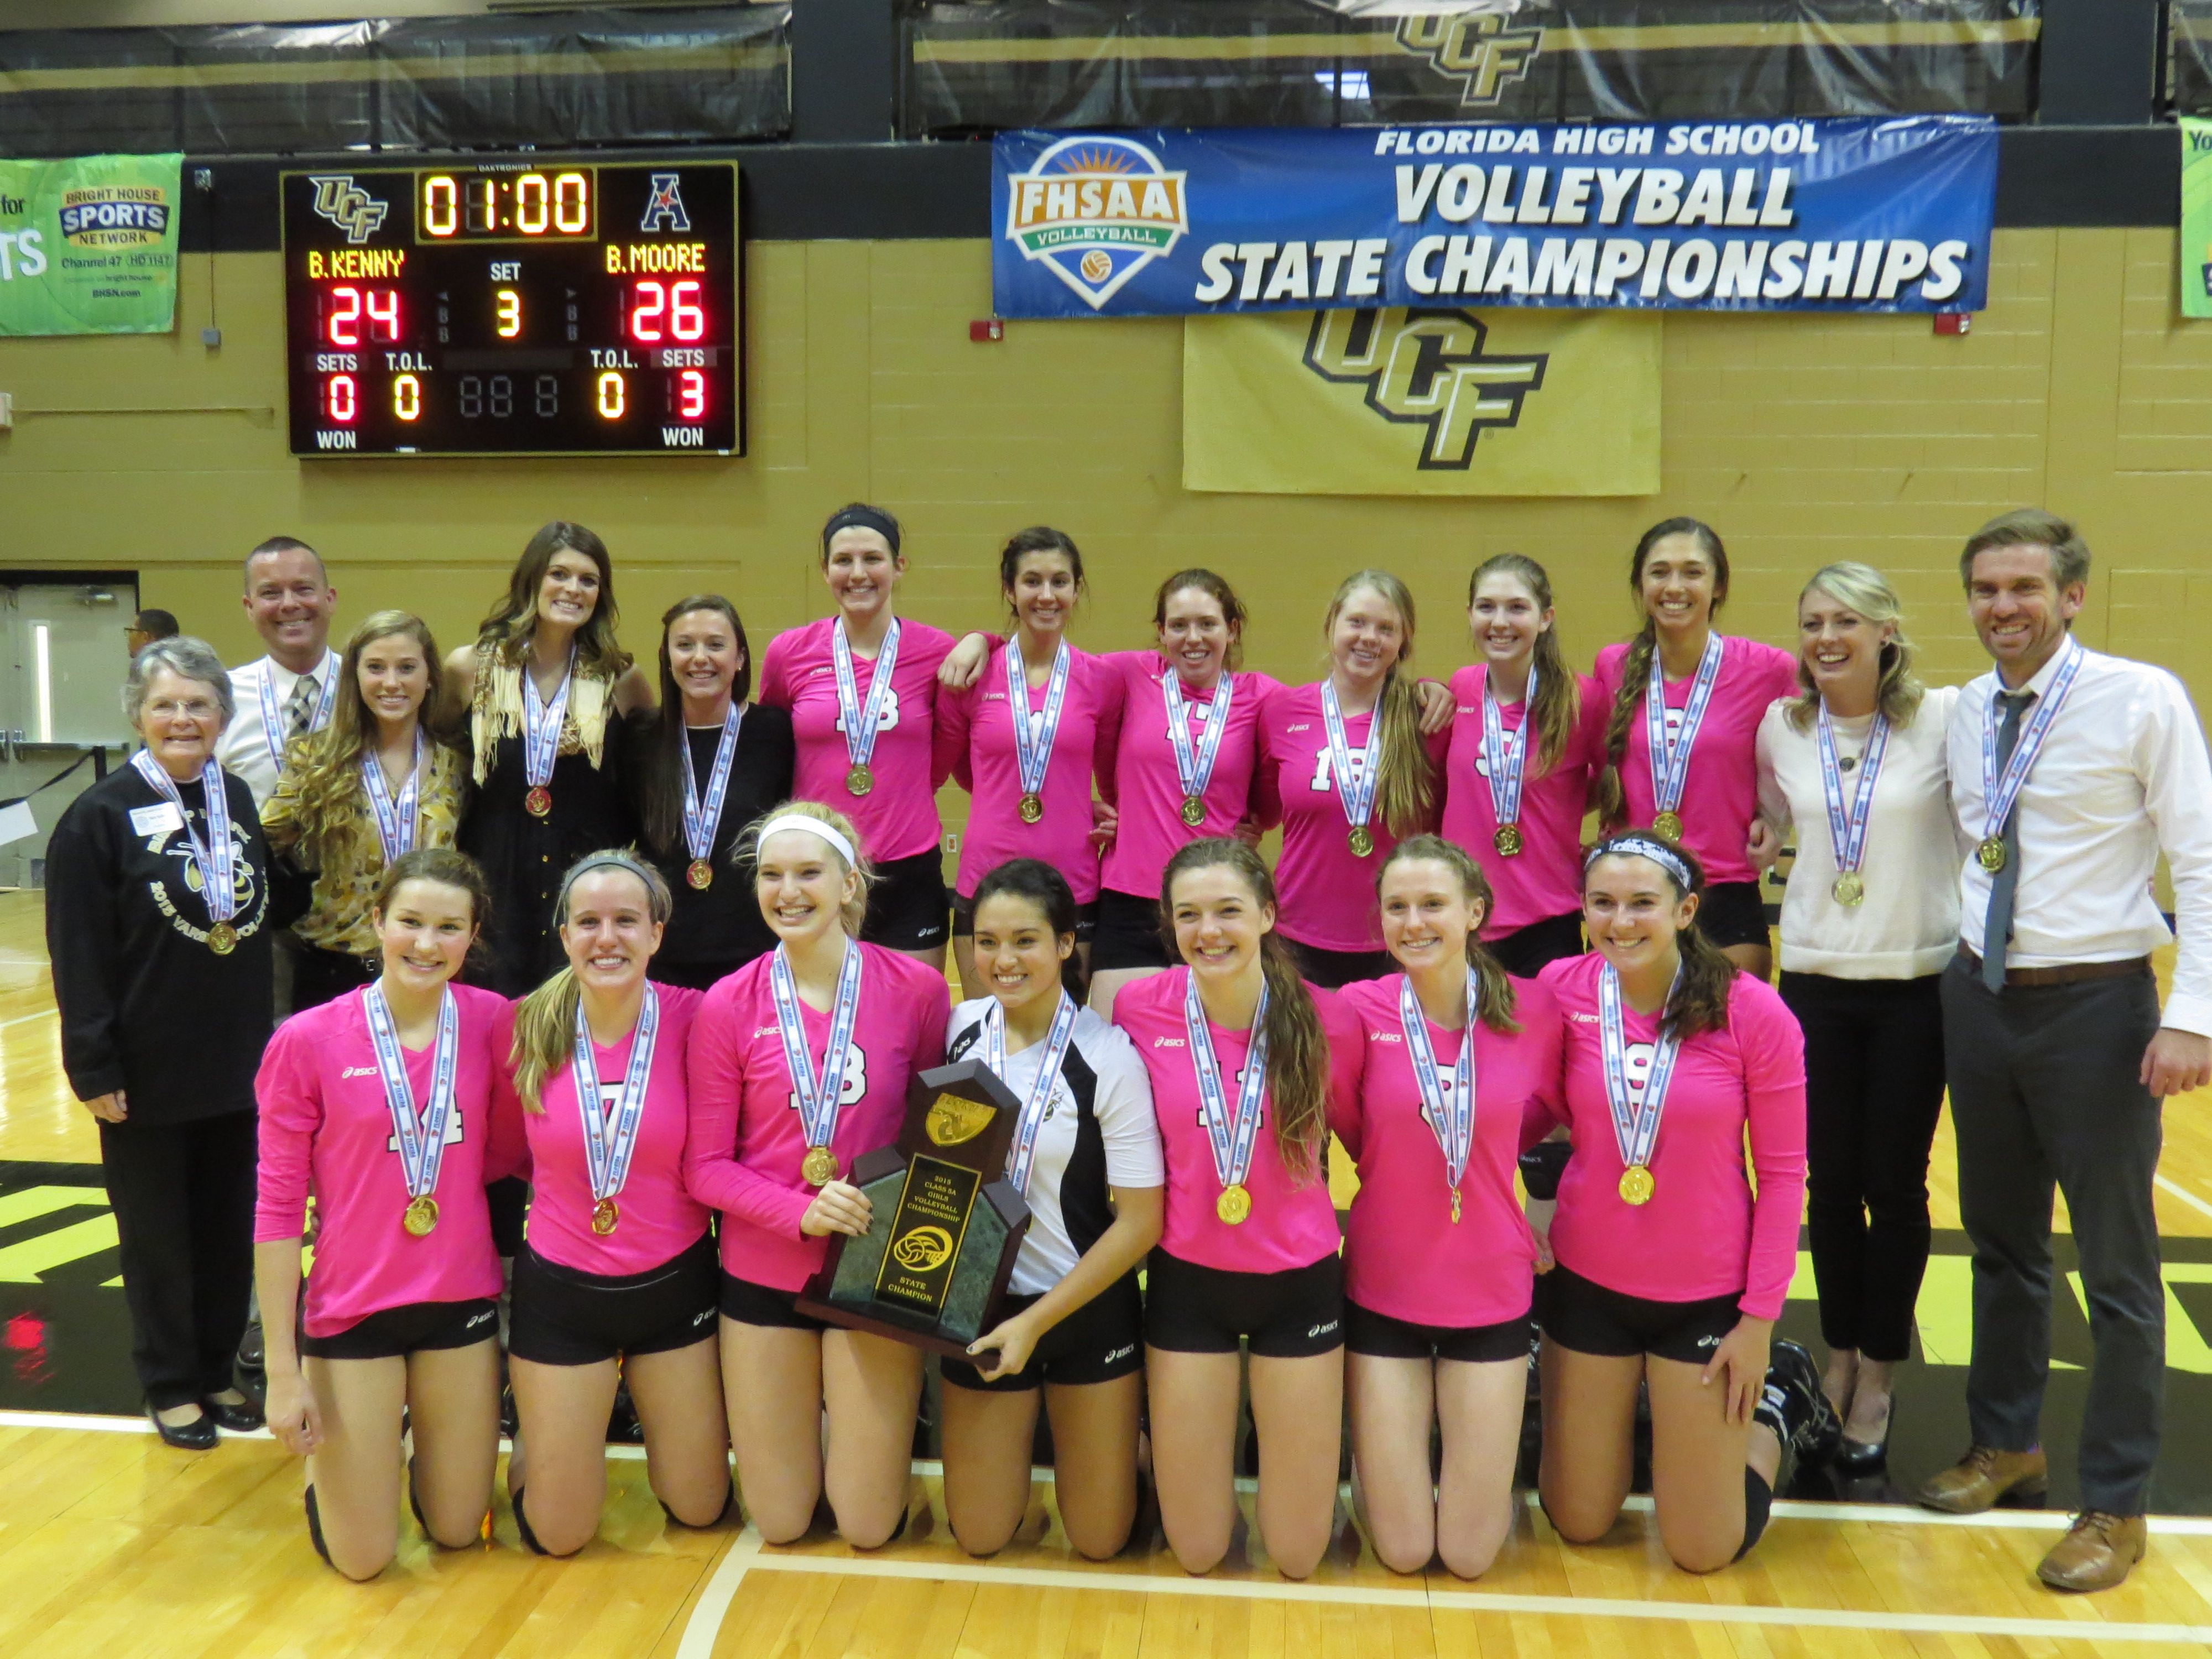 Day 2 Recap of the Florida High School Girls #Volleyball State  Championship. From #